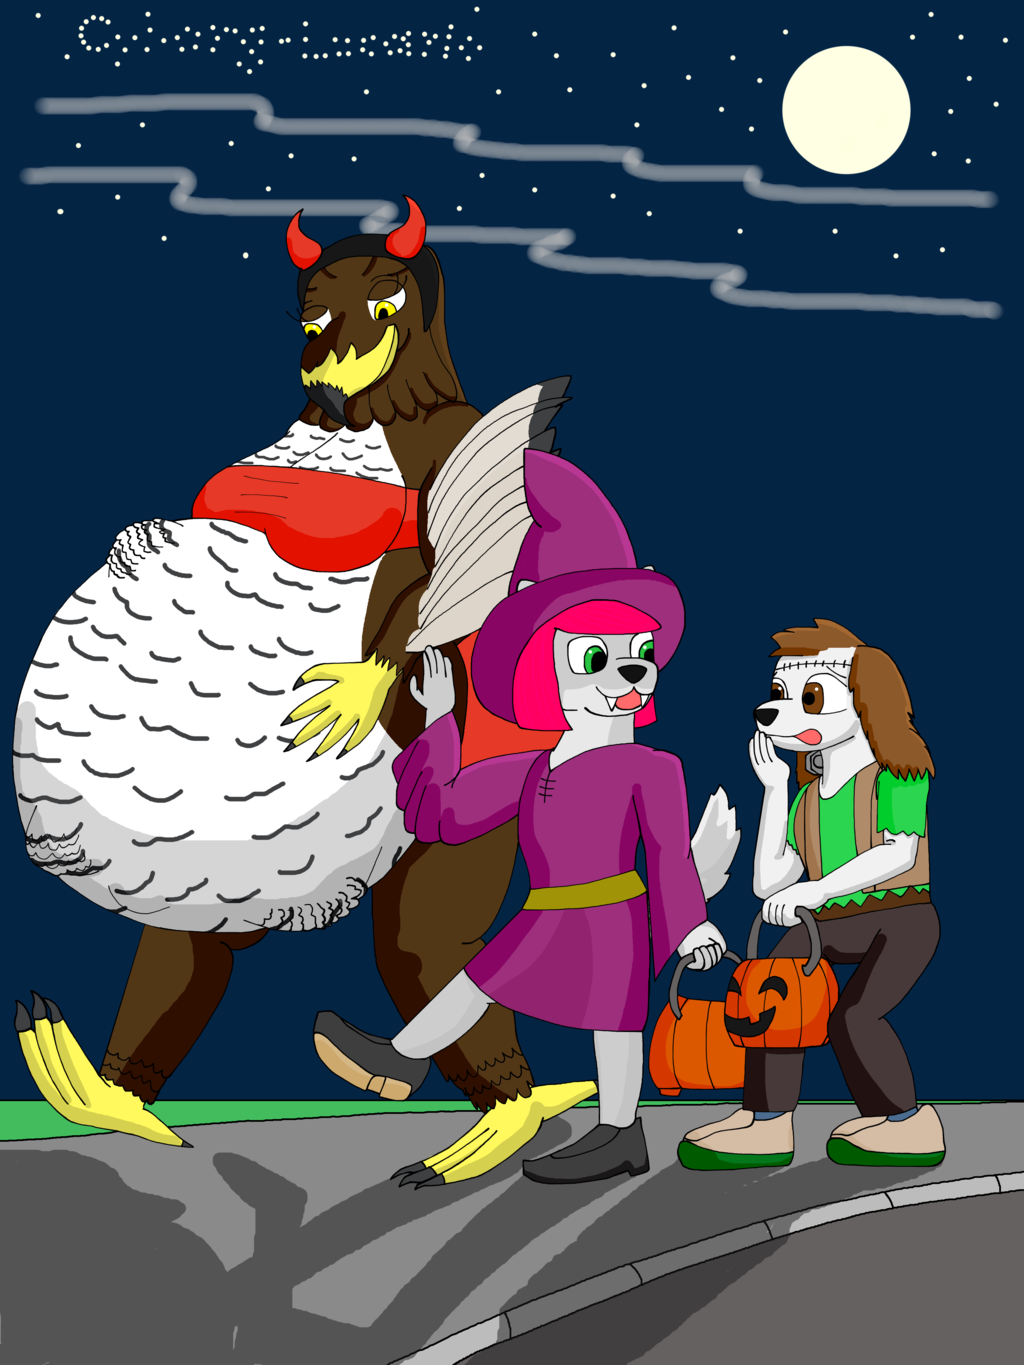 Be safe trick or treating